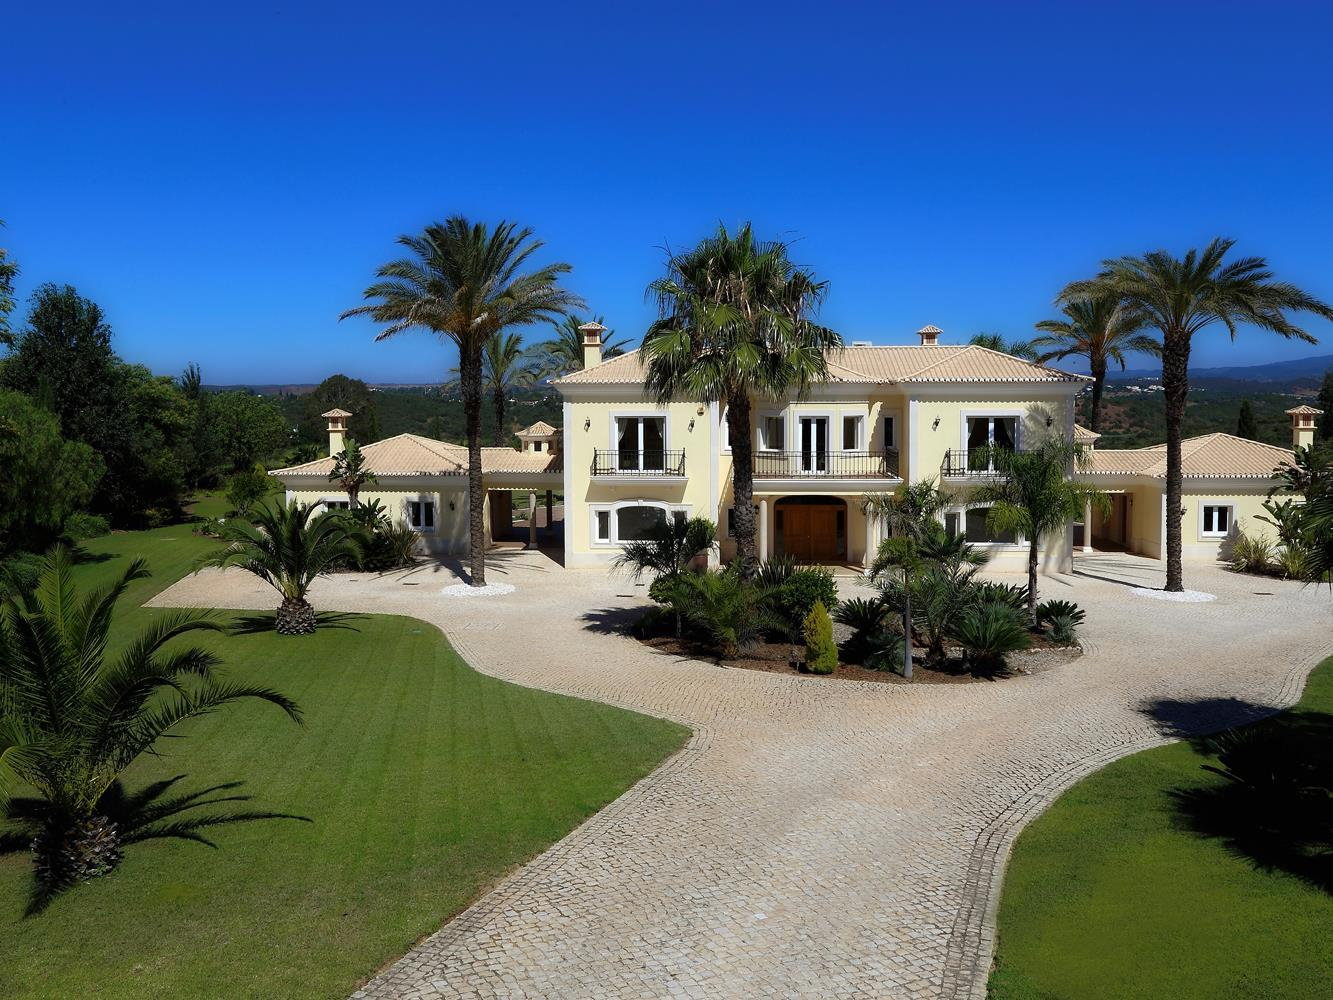 Single Family Home for Sale at Detached house, 5 bedrooms, for Sale Portimao, Algarve Portugal